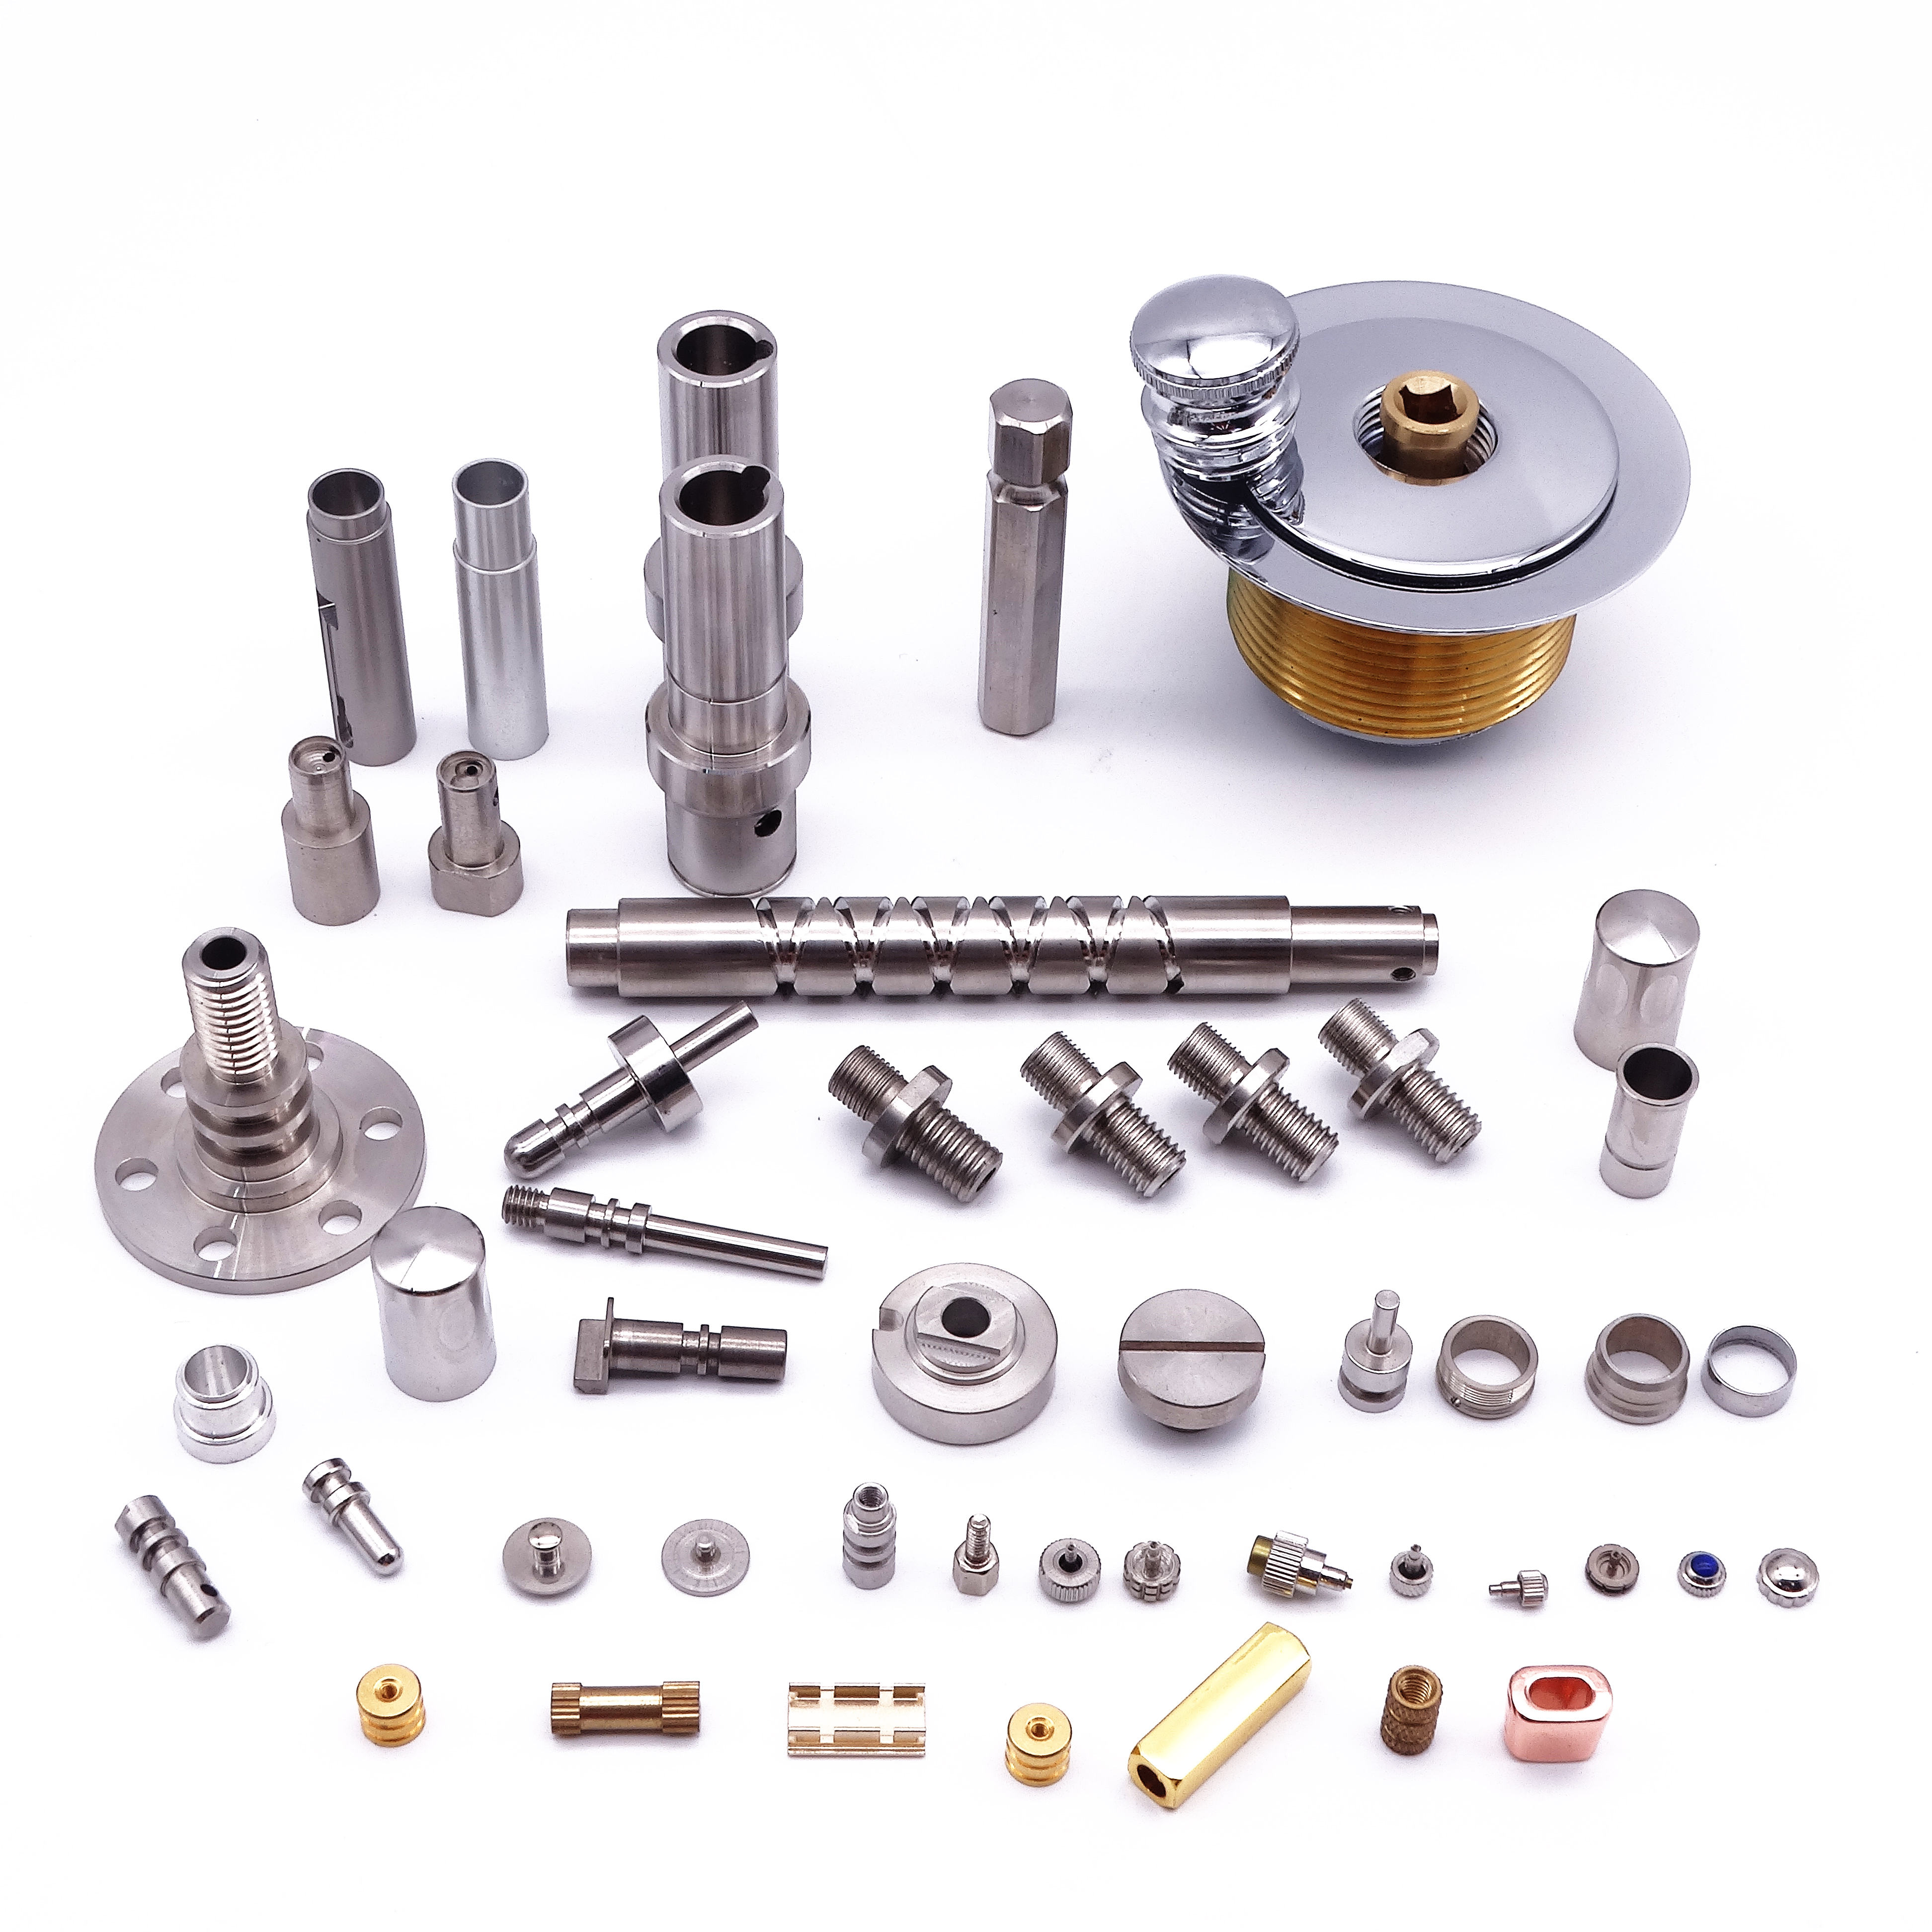 CNC Central Center Custom Precision OEM Machine Mechanical Machining Machinery 5 axis Lathe Mini Parts Service